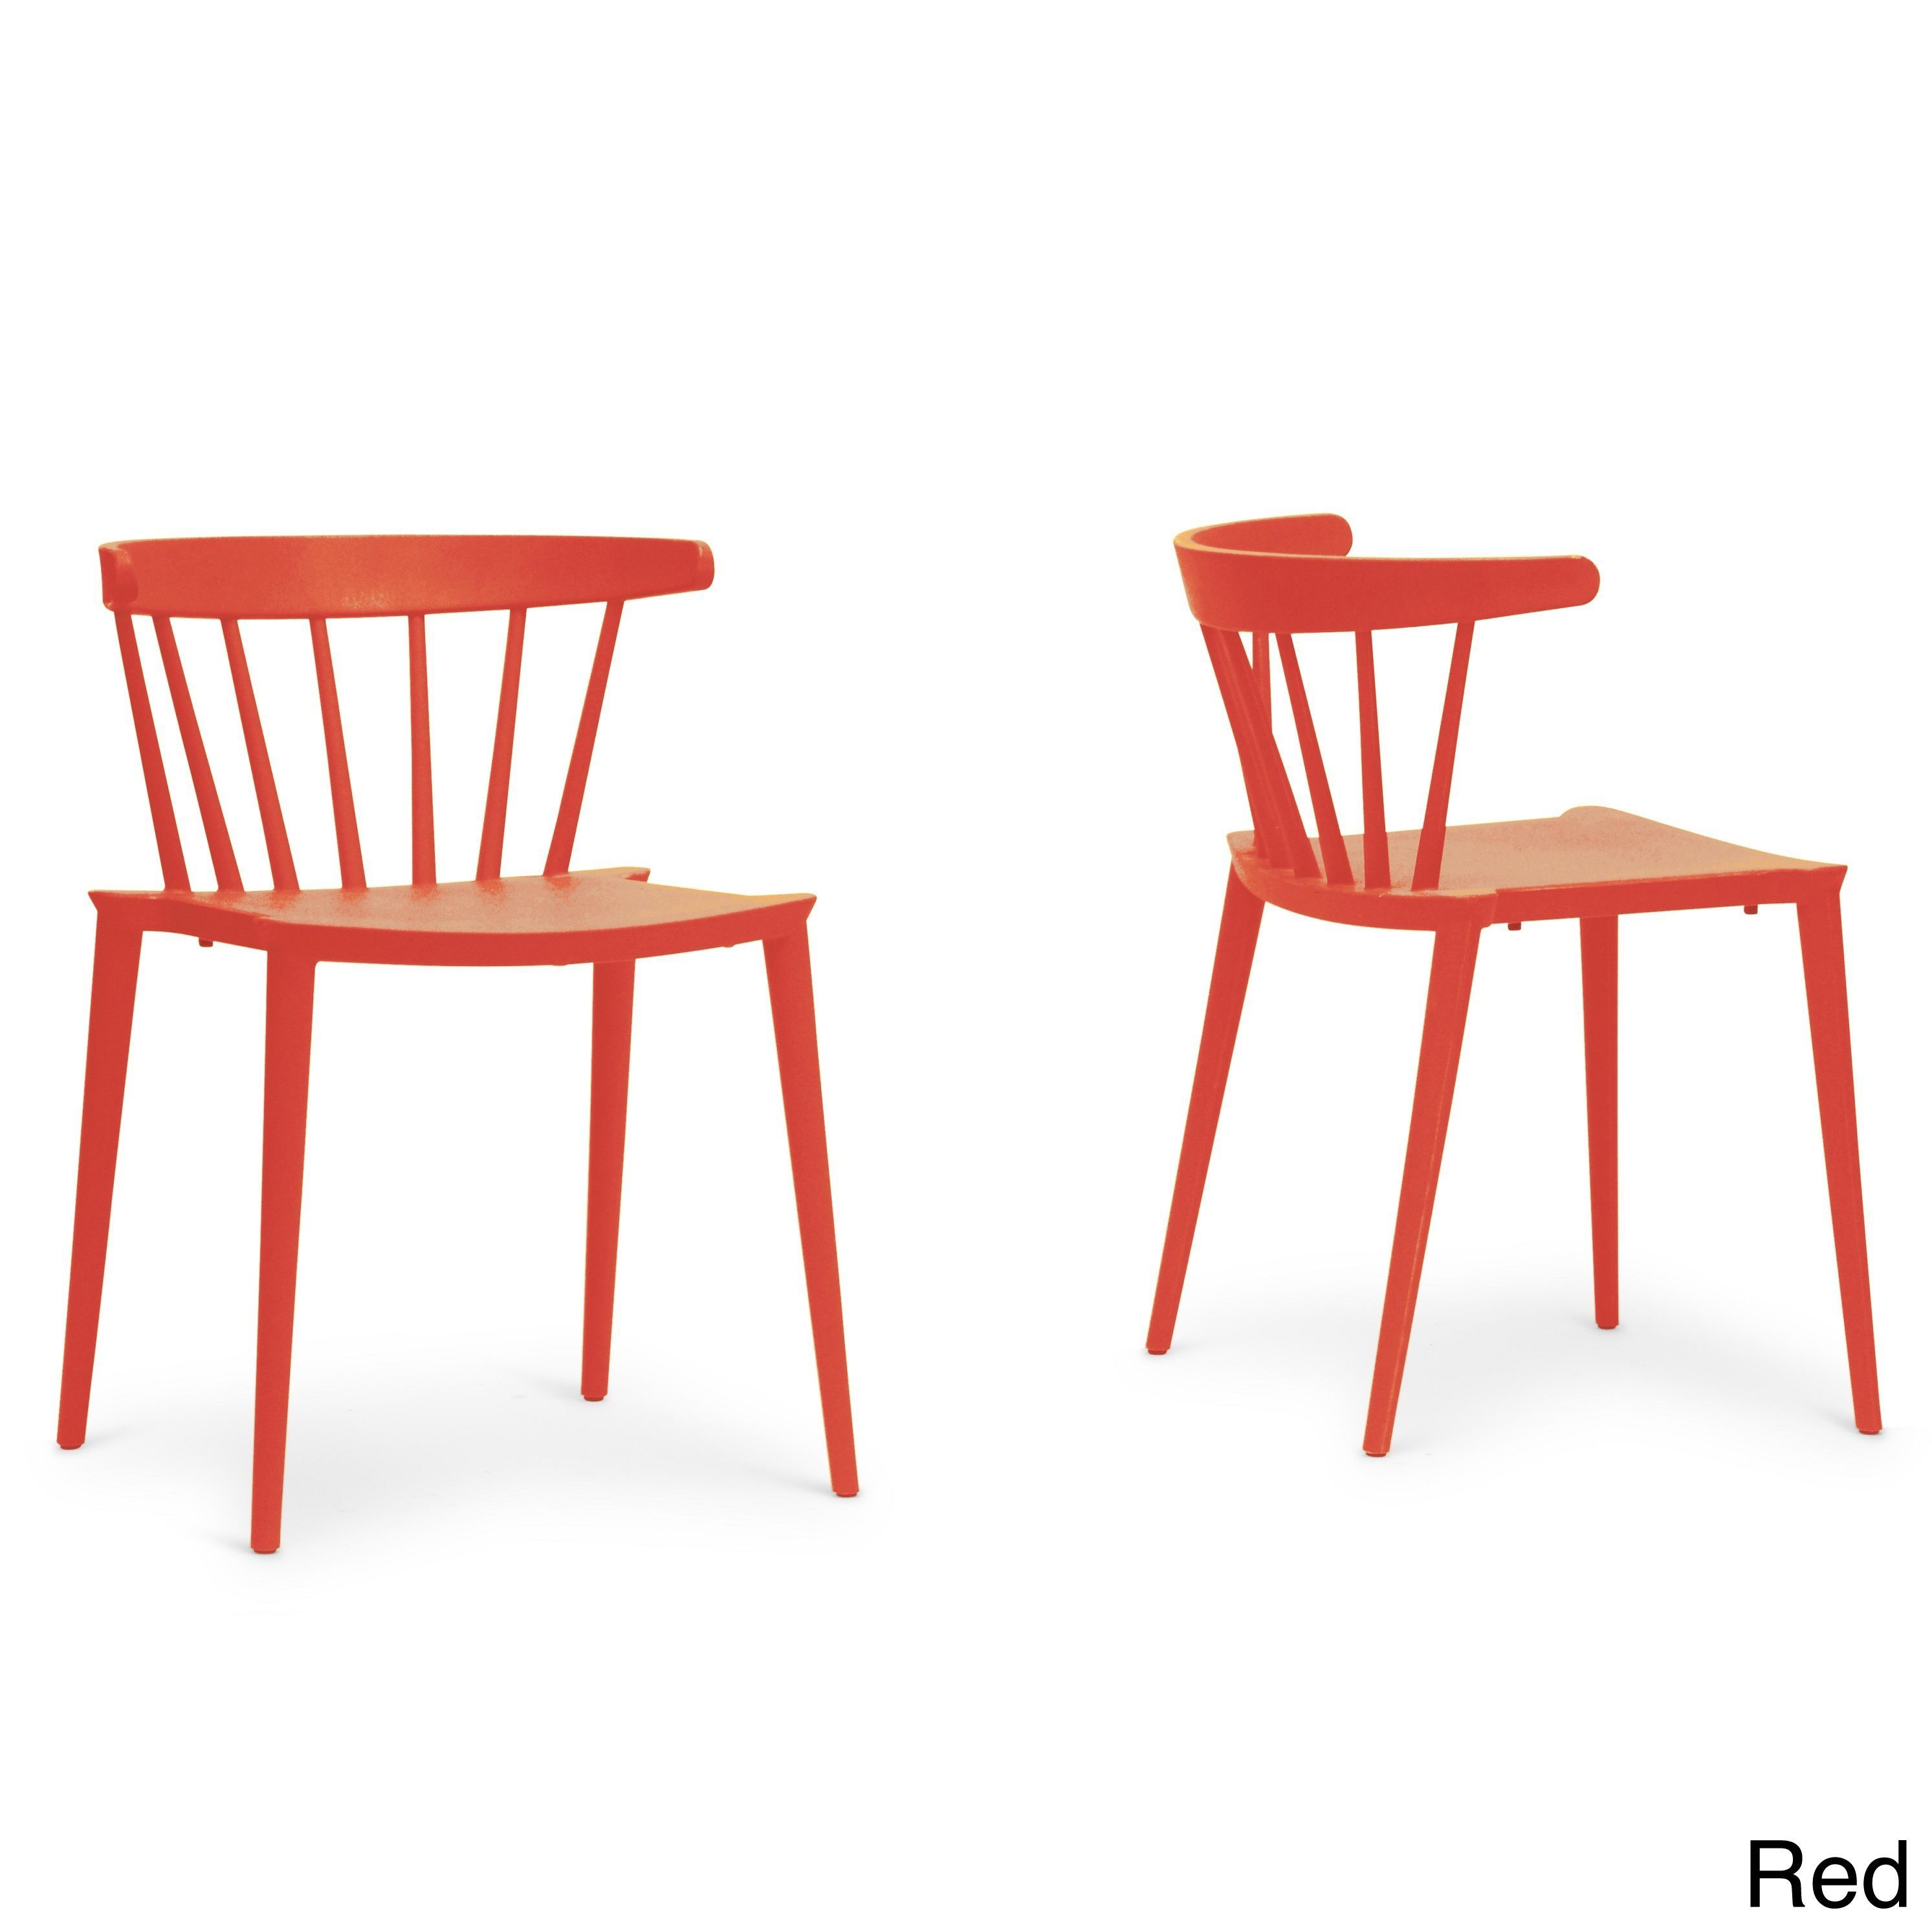 Stacking Dining Room Chairs: Baxton Studio Finchum Red Plastic Stackable Modern Dining